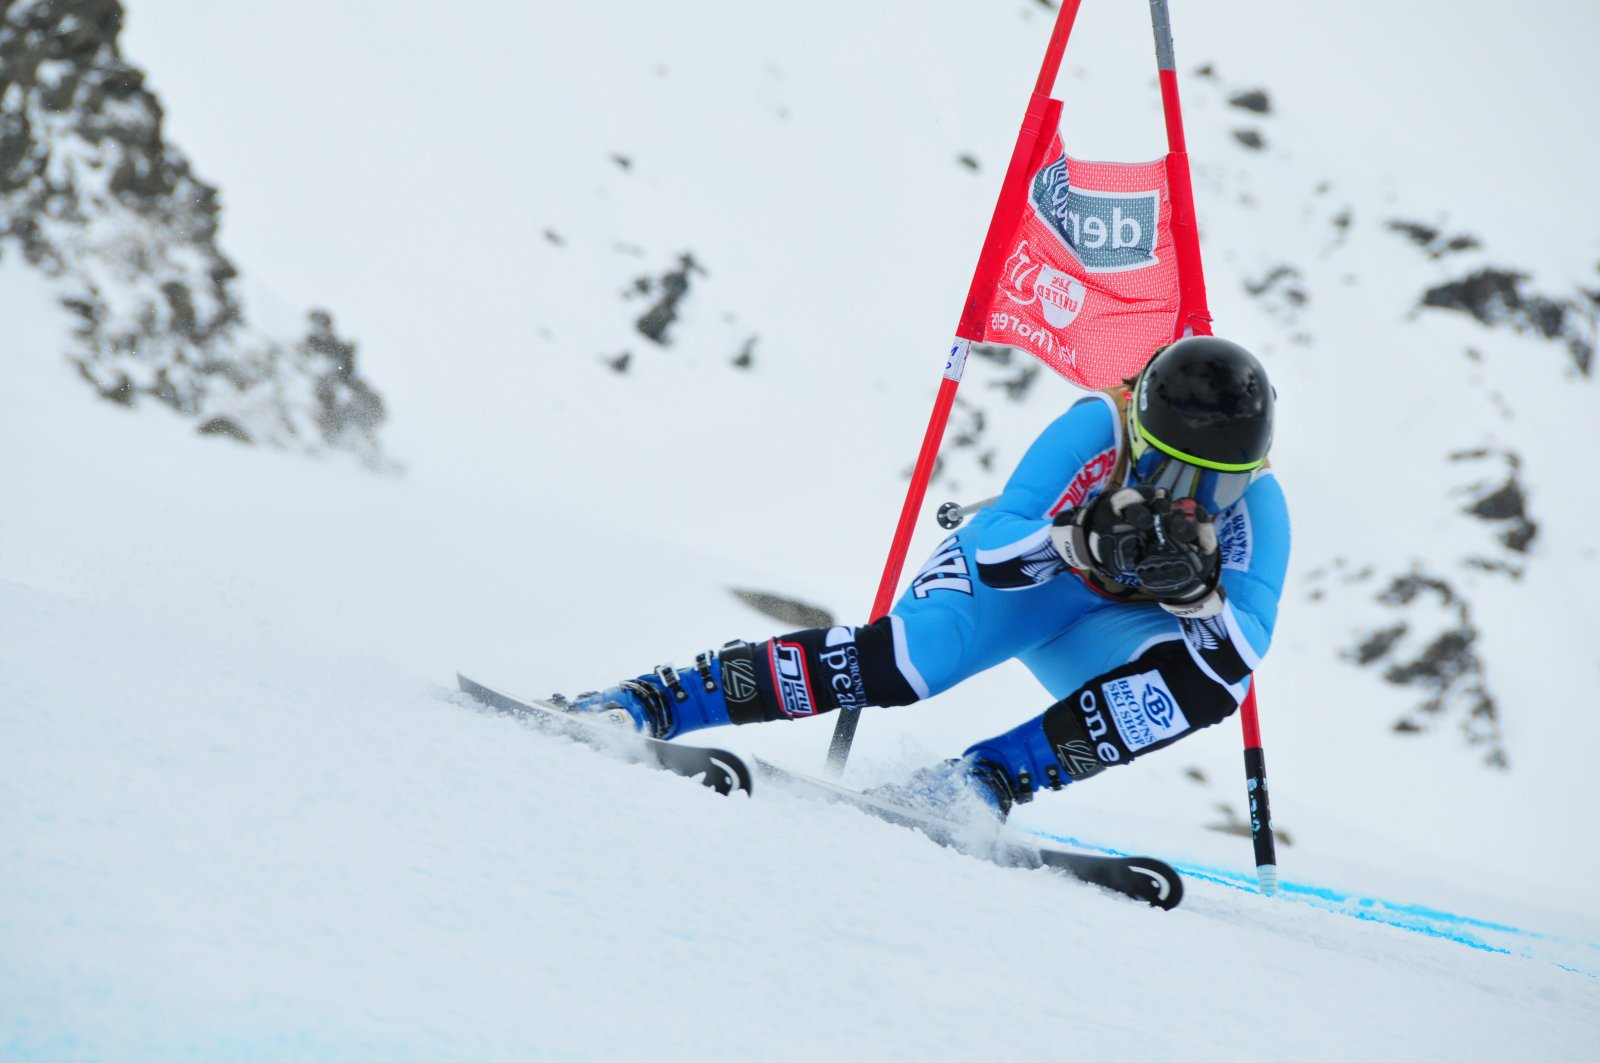 Super G race at Val Thorens in France, placing 4th